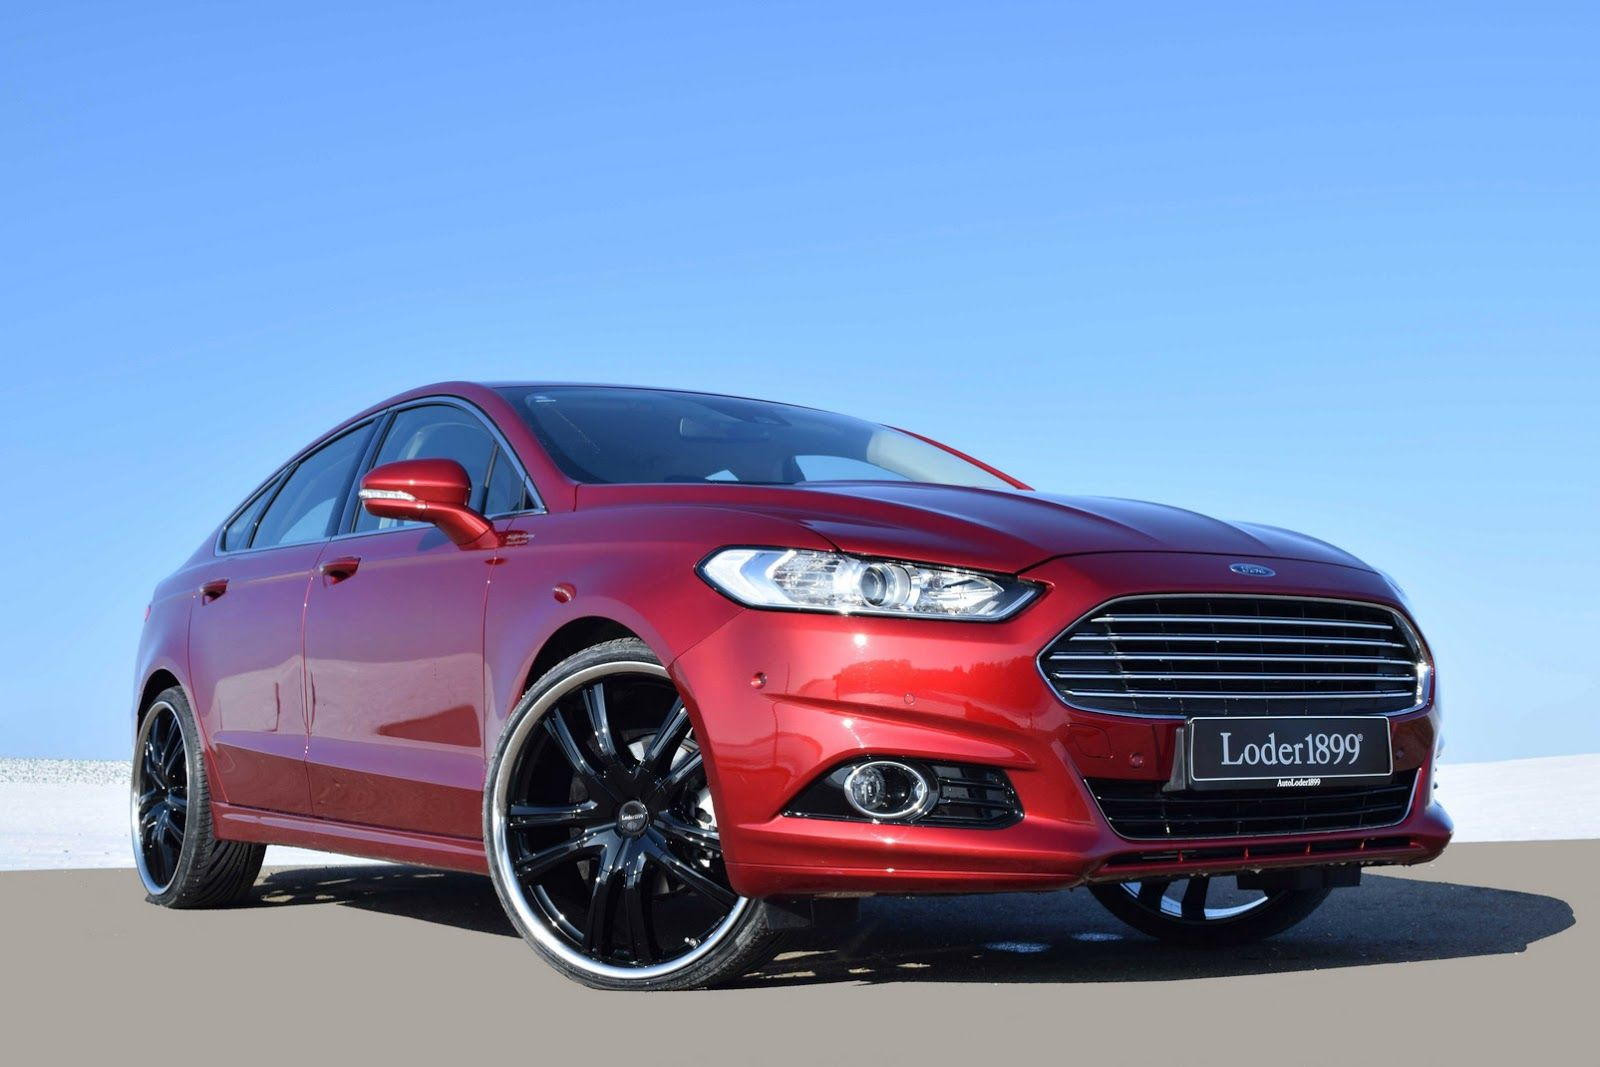 Too Much Loder1899 Gives New Ford Mondeo 22 Inch Wheels Carscoops Ford Mondeo Ford Old Ford Trucks